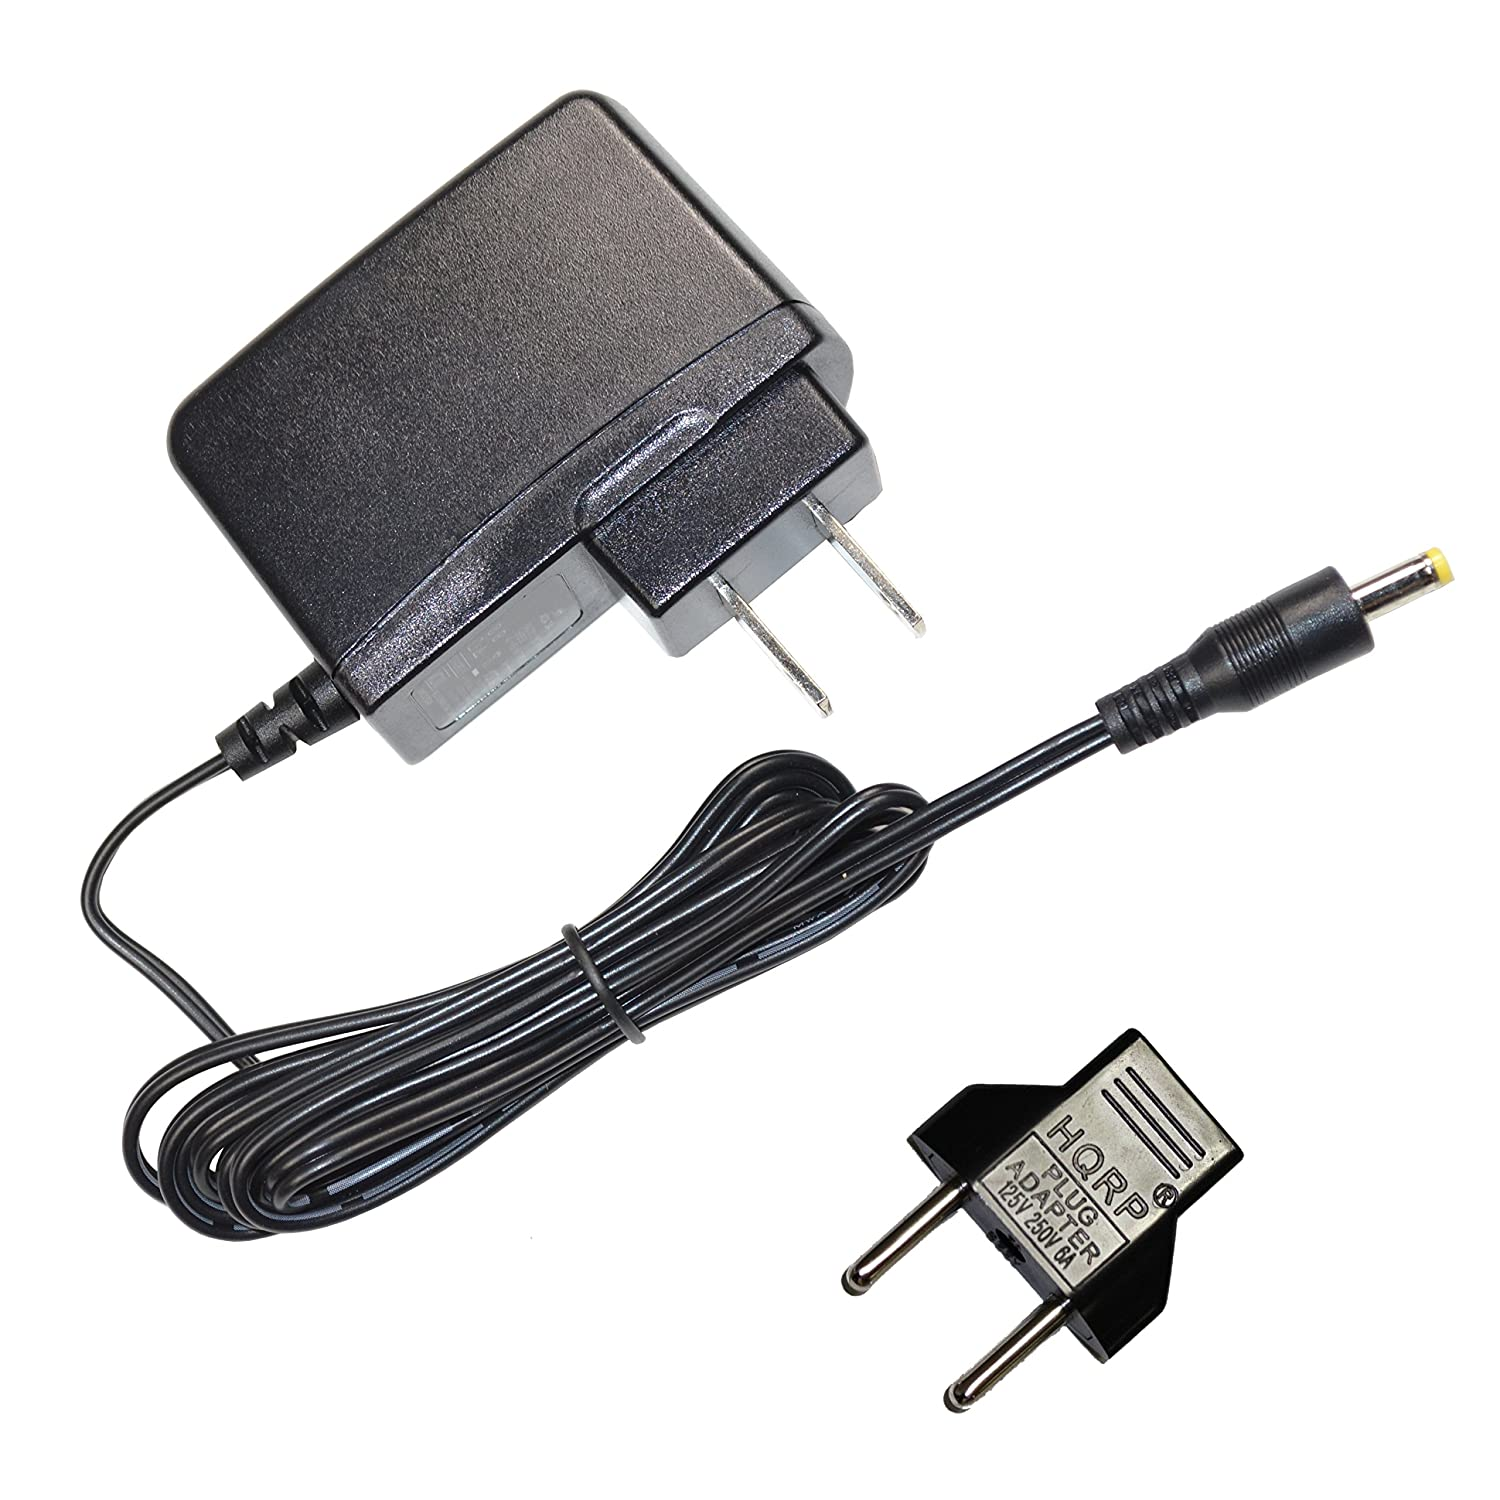 Amazon.com: HQRP AC Adapter Power Supply for 2Wire / ATT ACWS011C ...